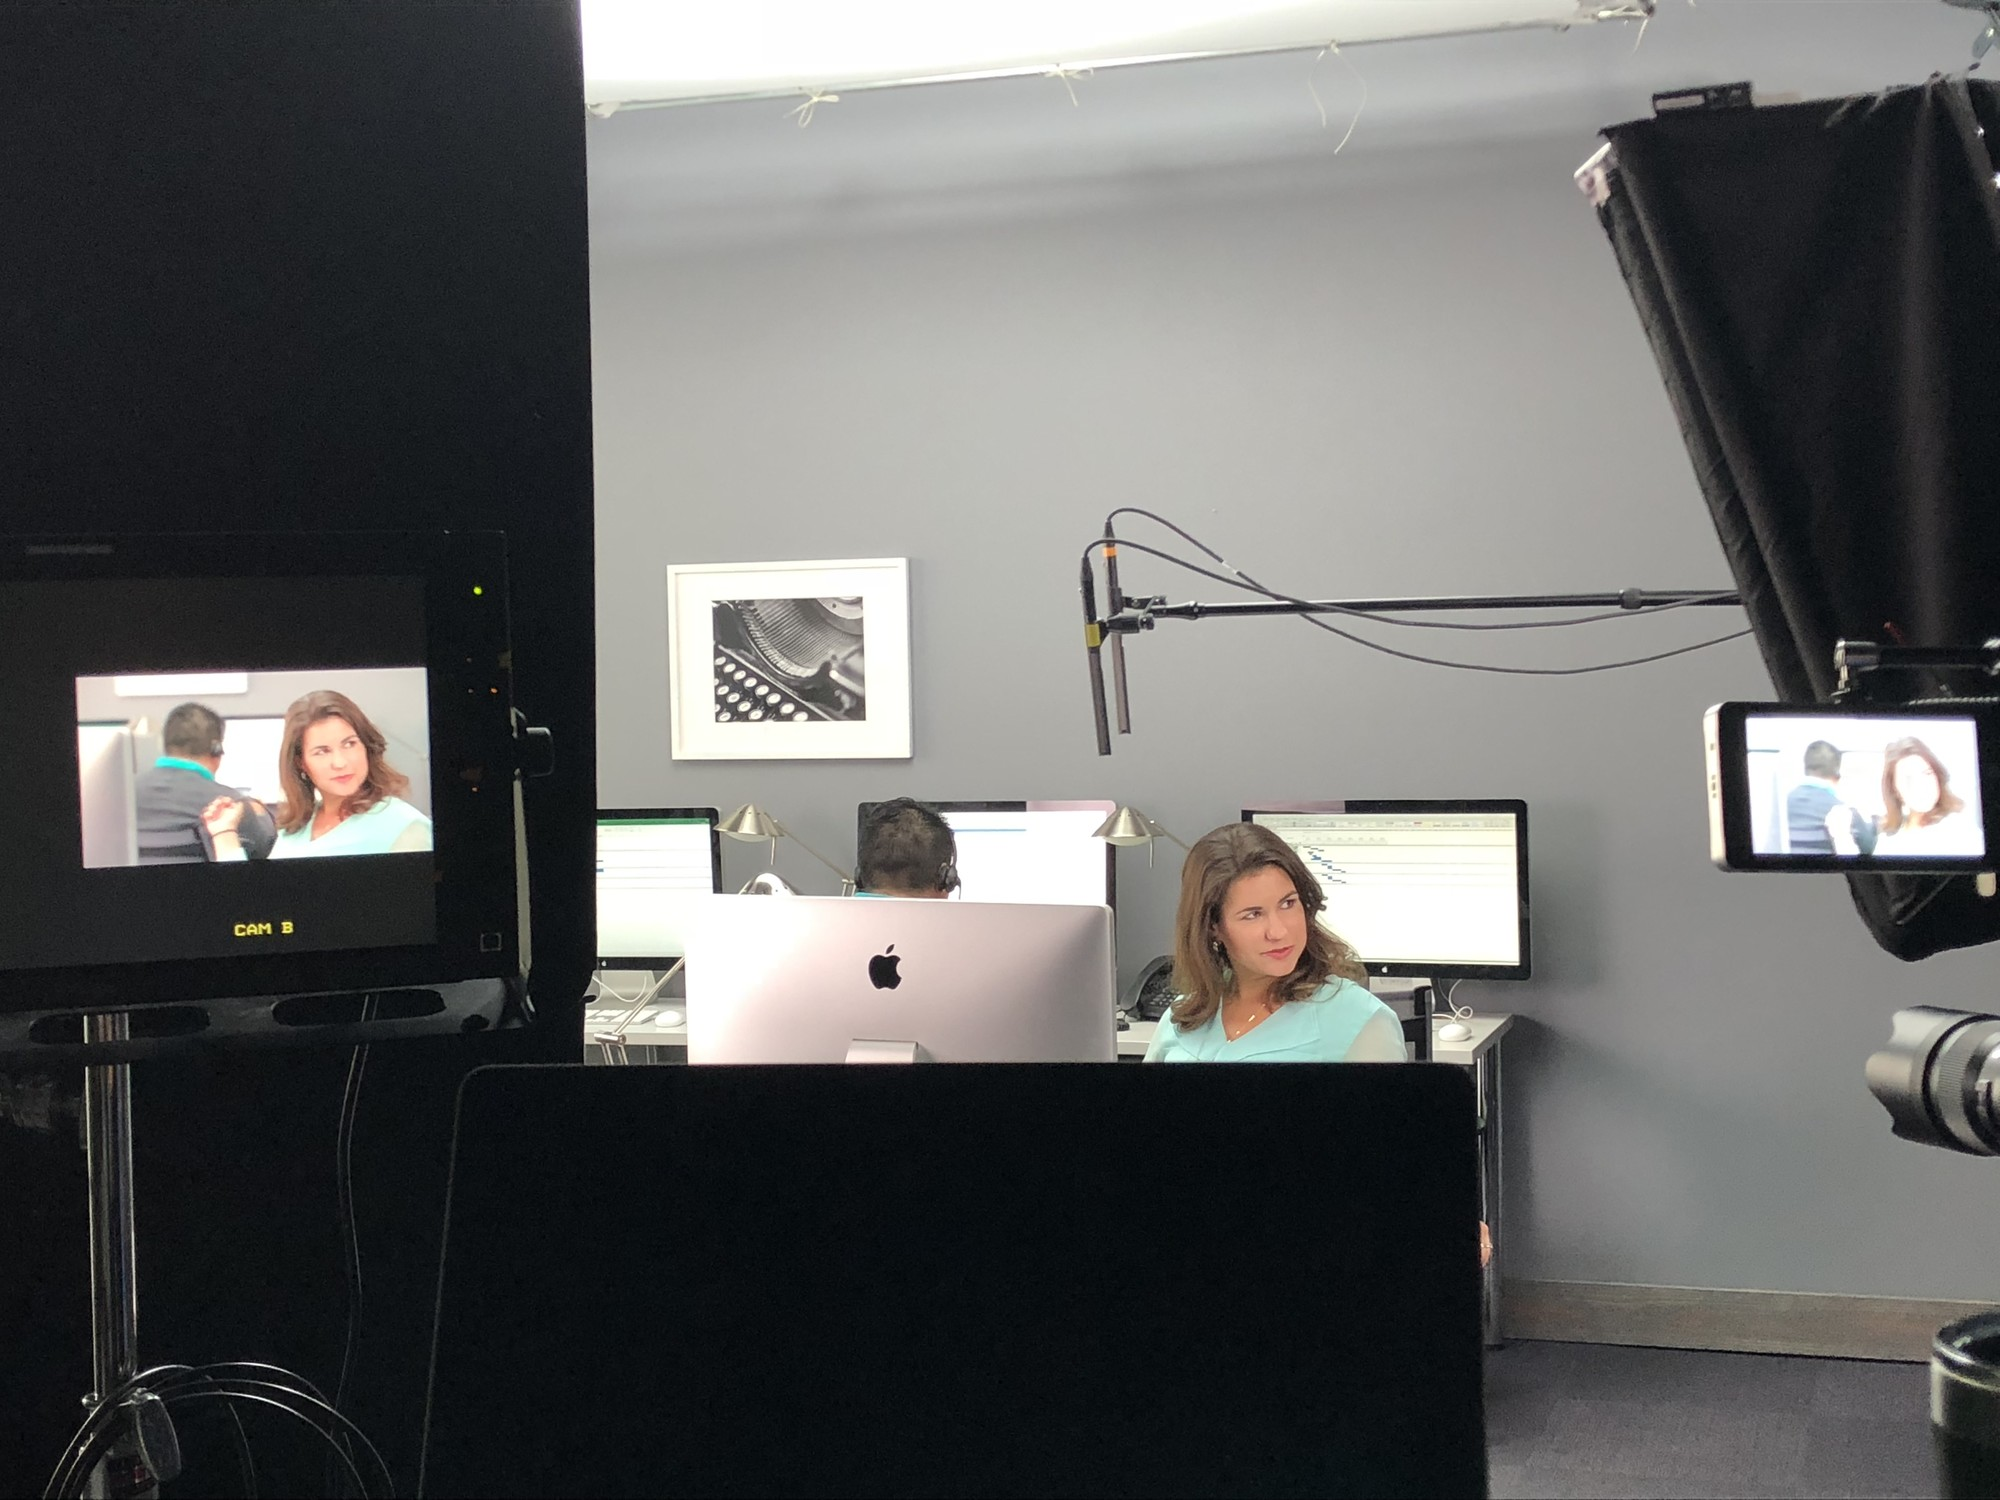 Filming a customer service training video on a contact center set.